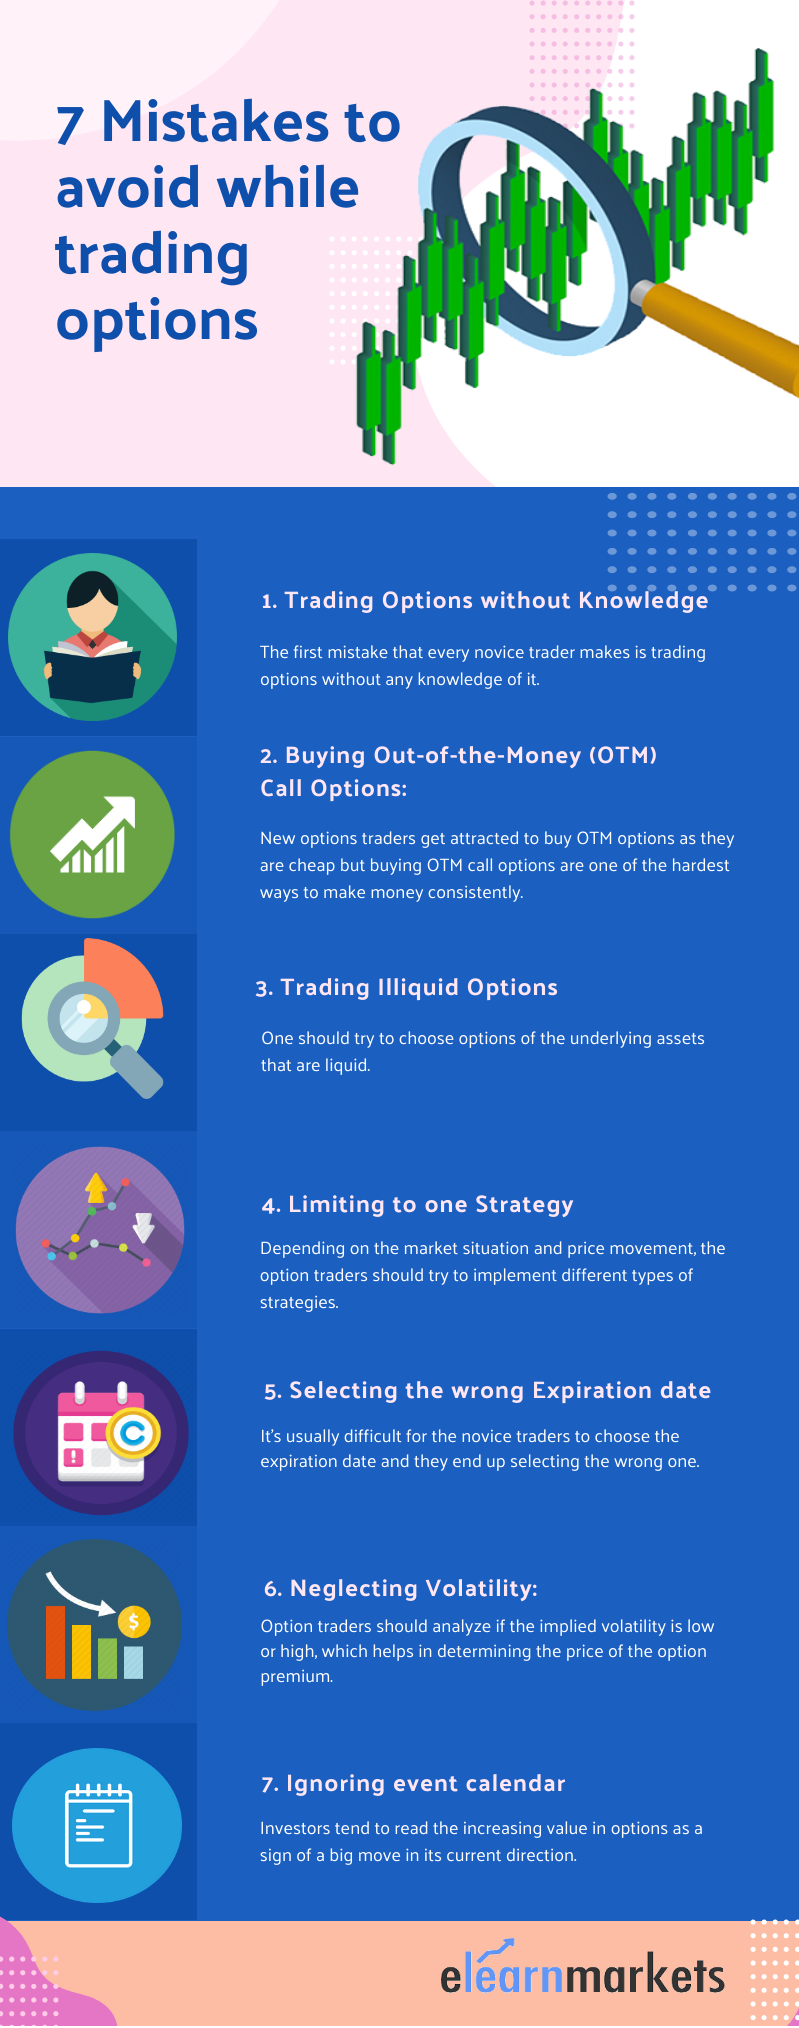 trading in options mistakes